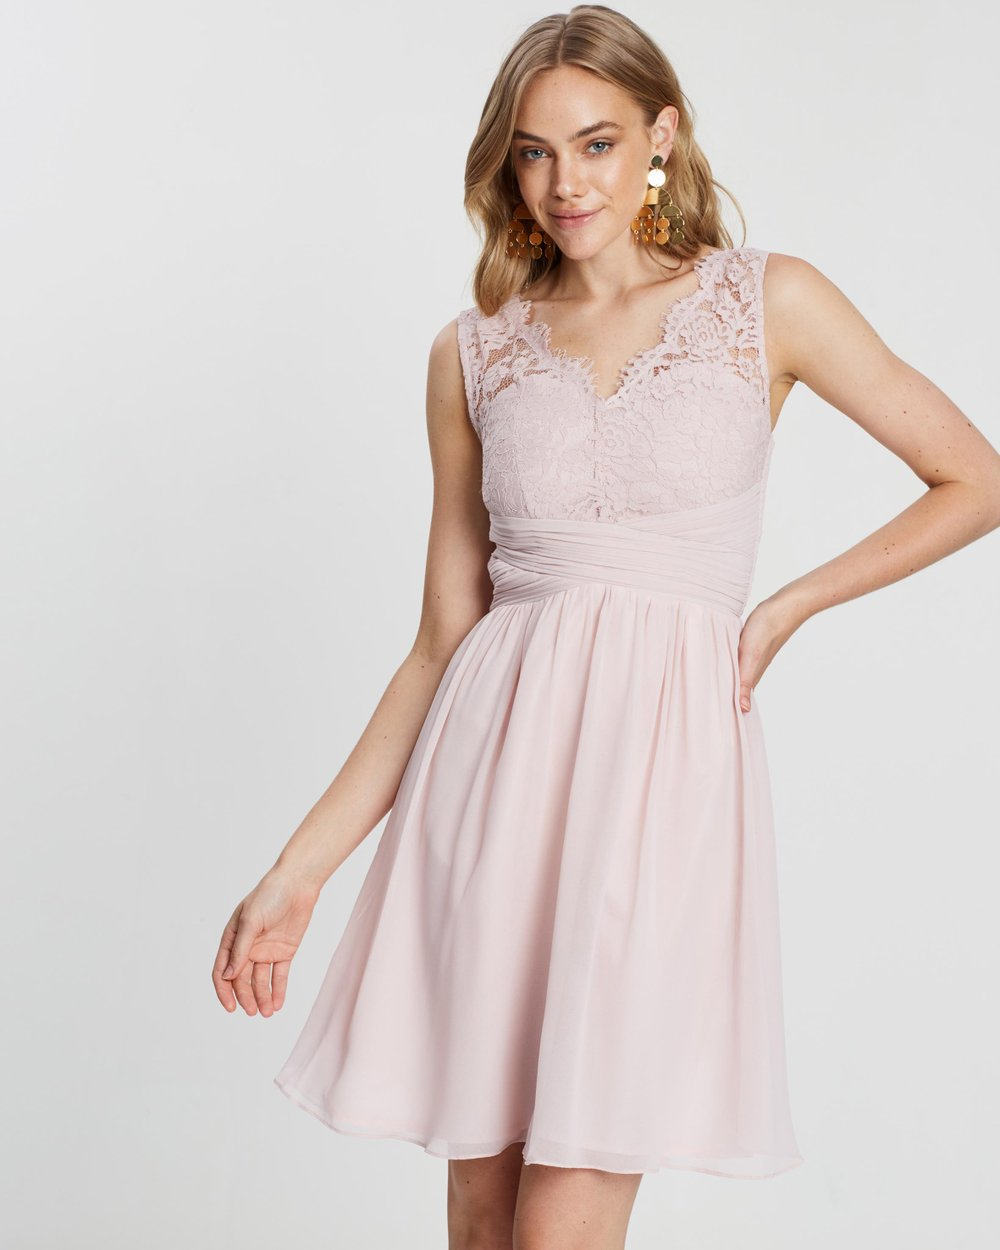 Belle Lace Detail Prom Dress By Dorothy Perkins Online The Iconic